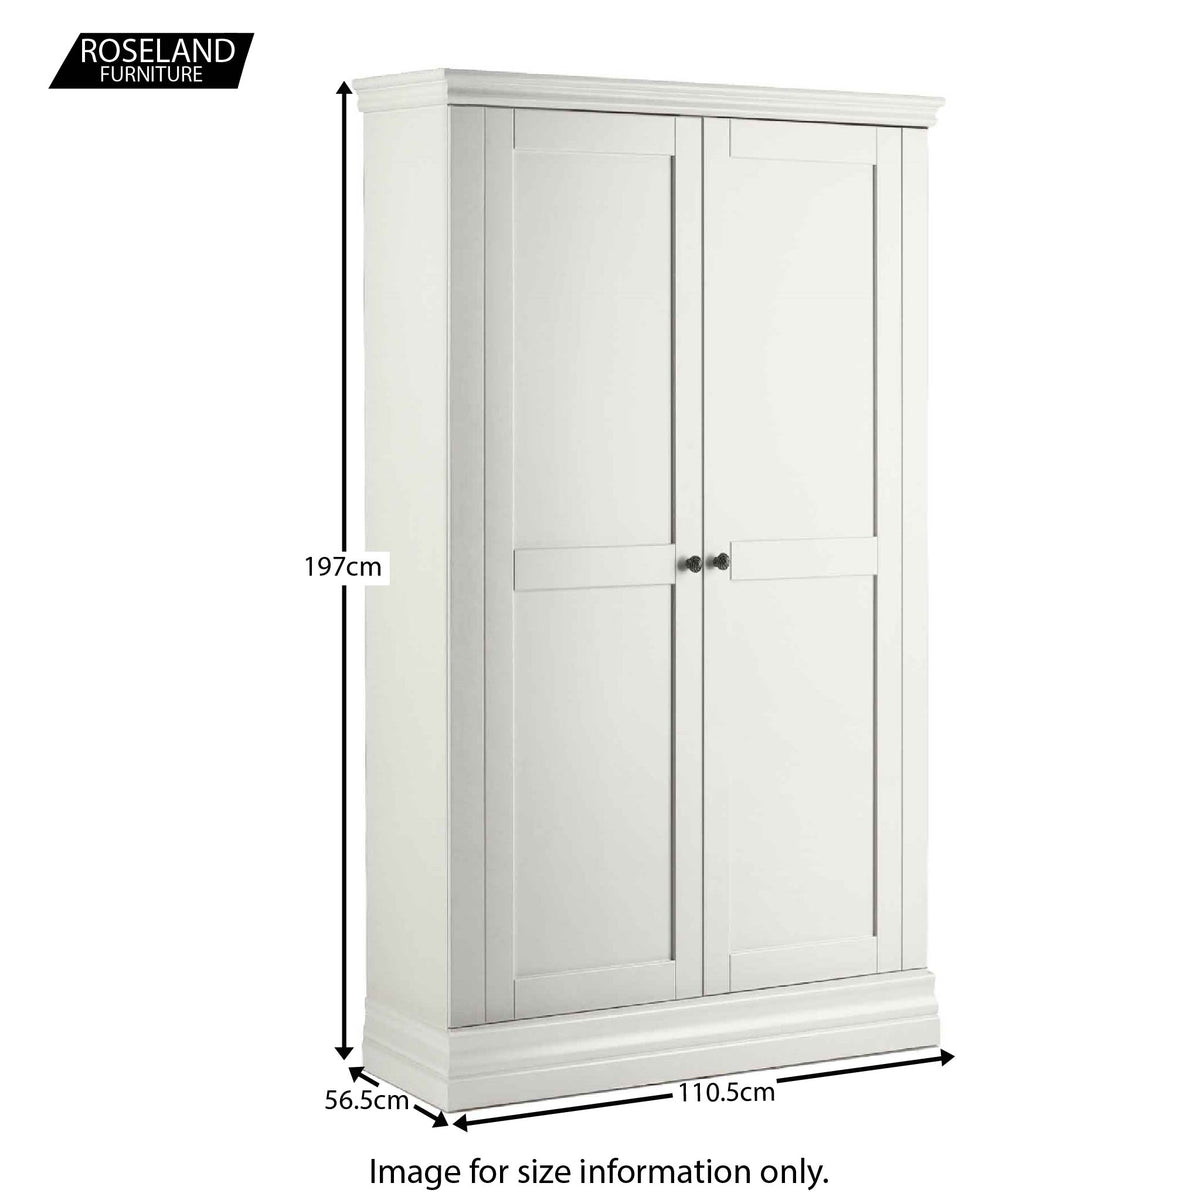 Dimensions for the Melrose White Narrow Double Wardrobe from Roseland Furniture